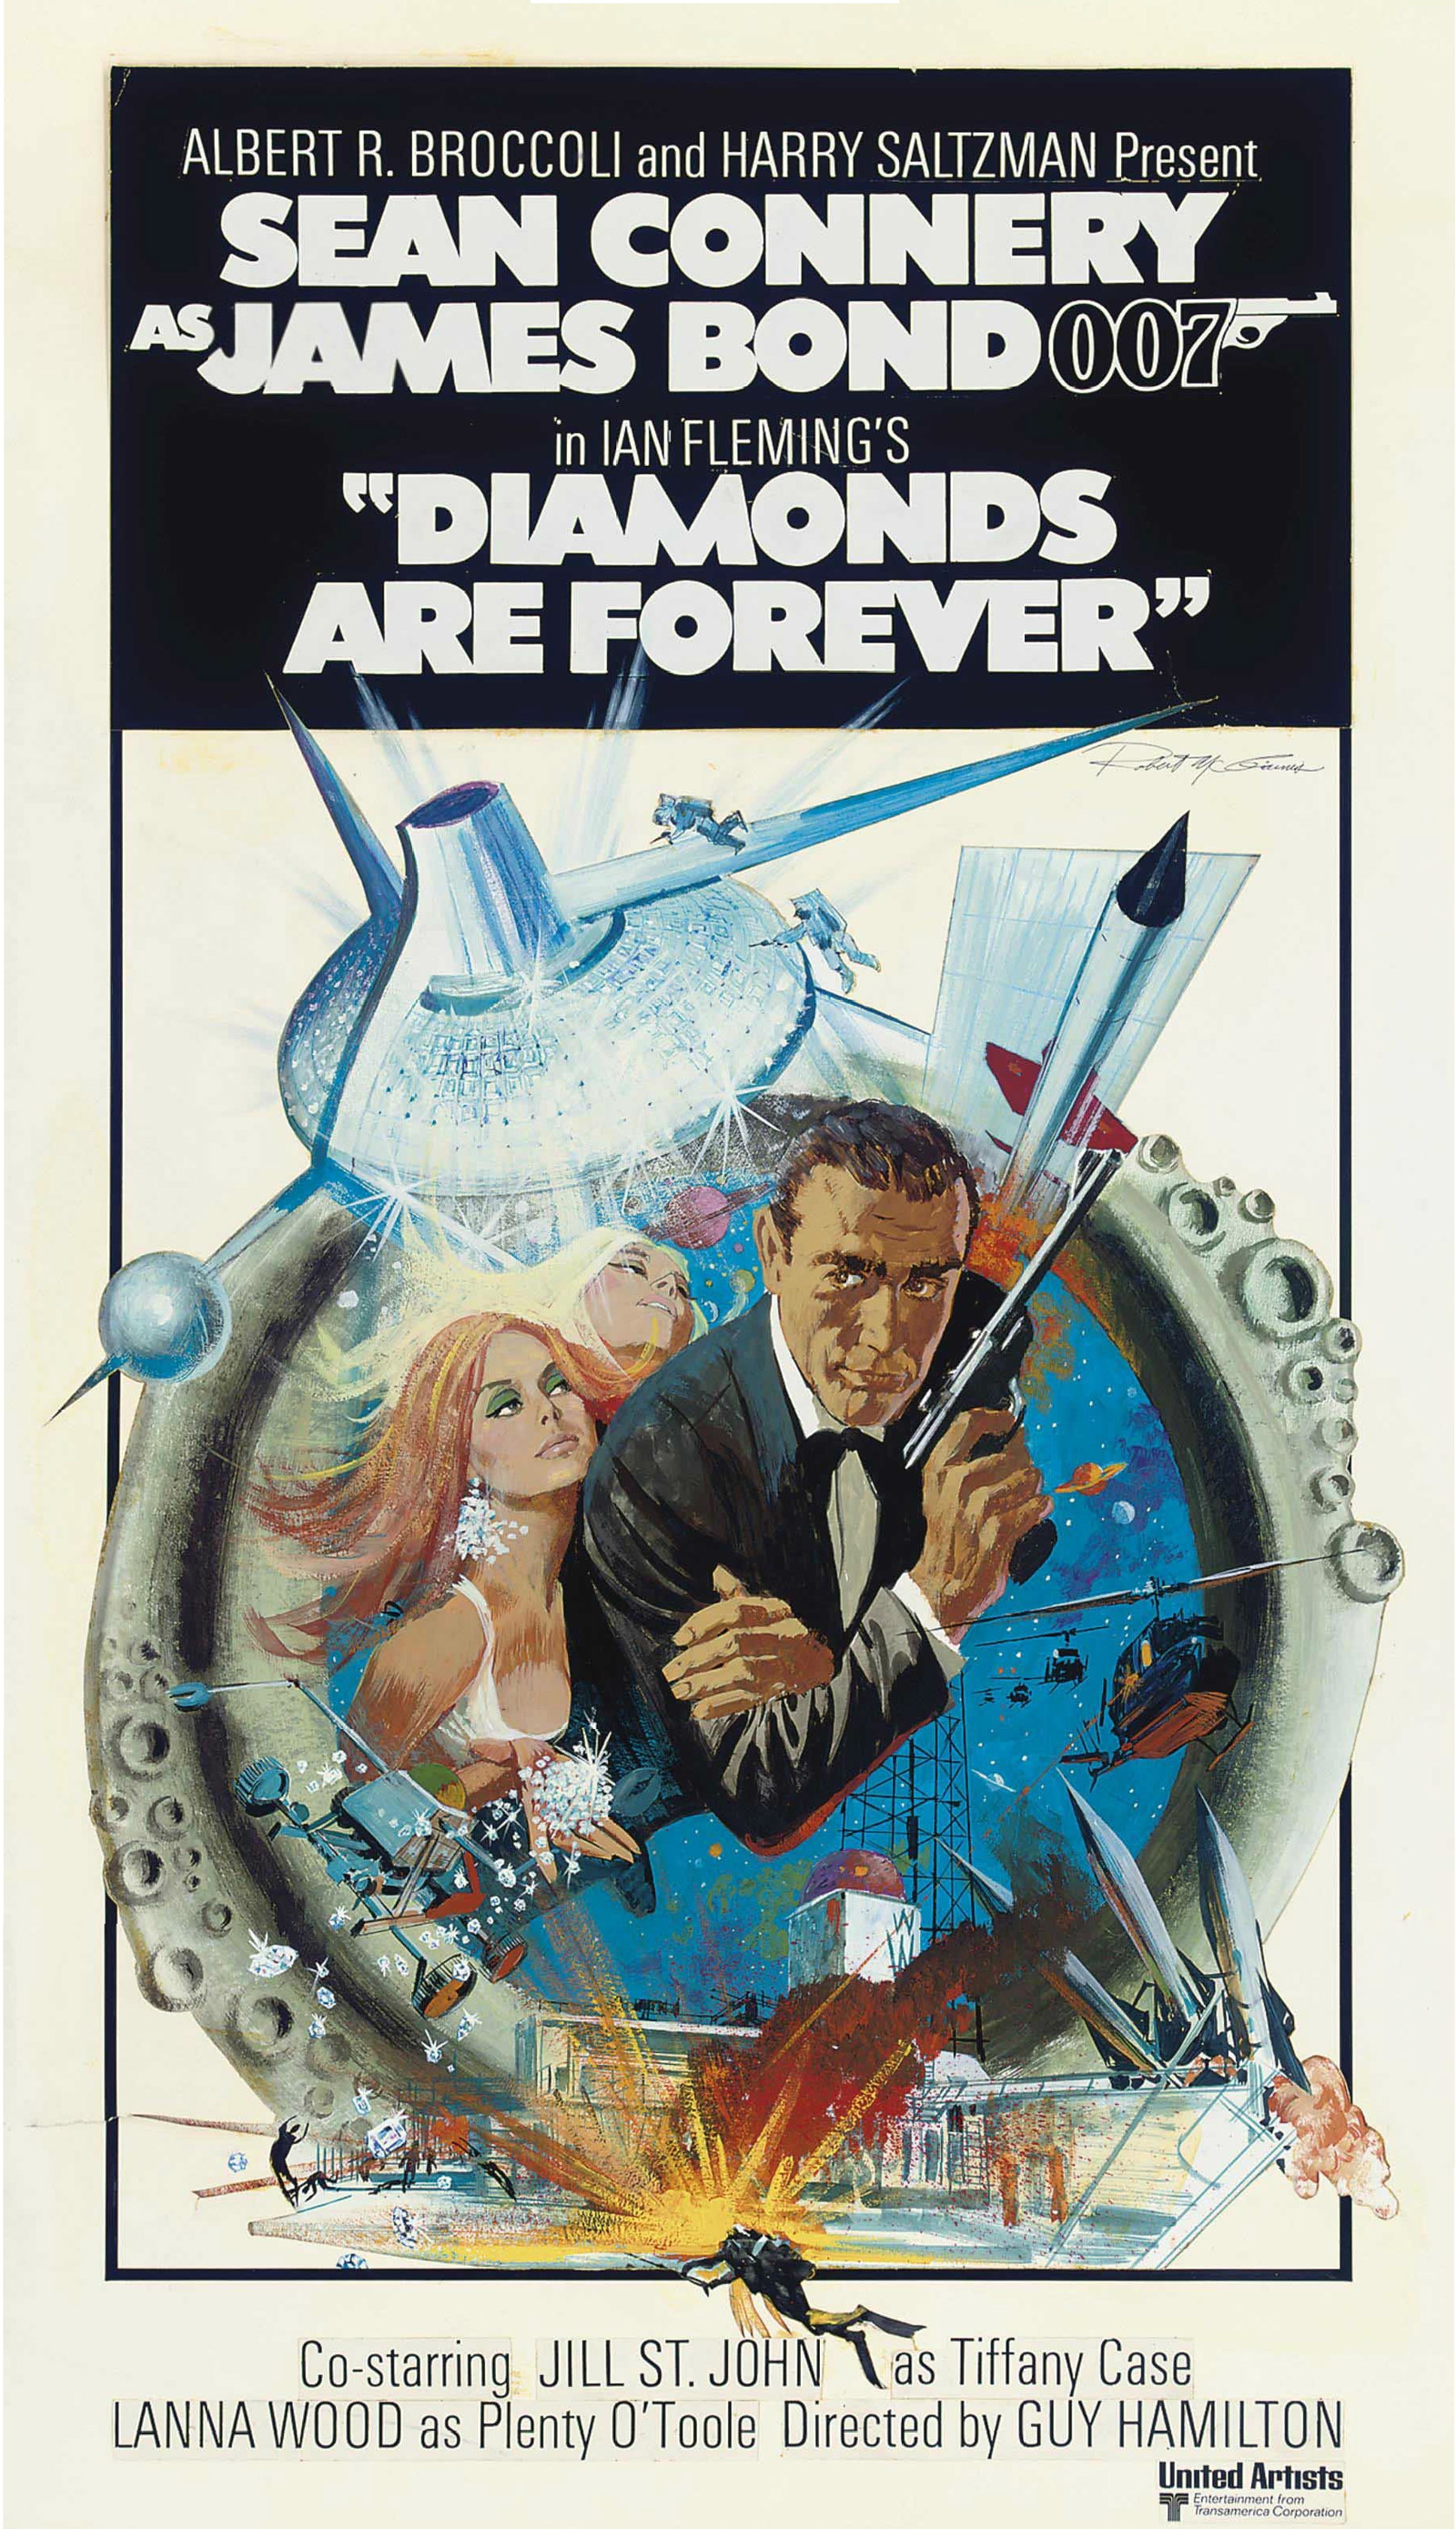 The Original Diamonds Are Forever Movie Poster Fetches ...